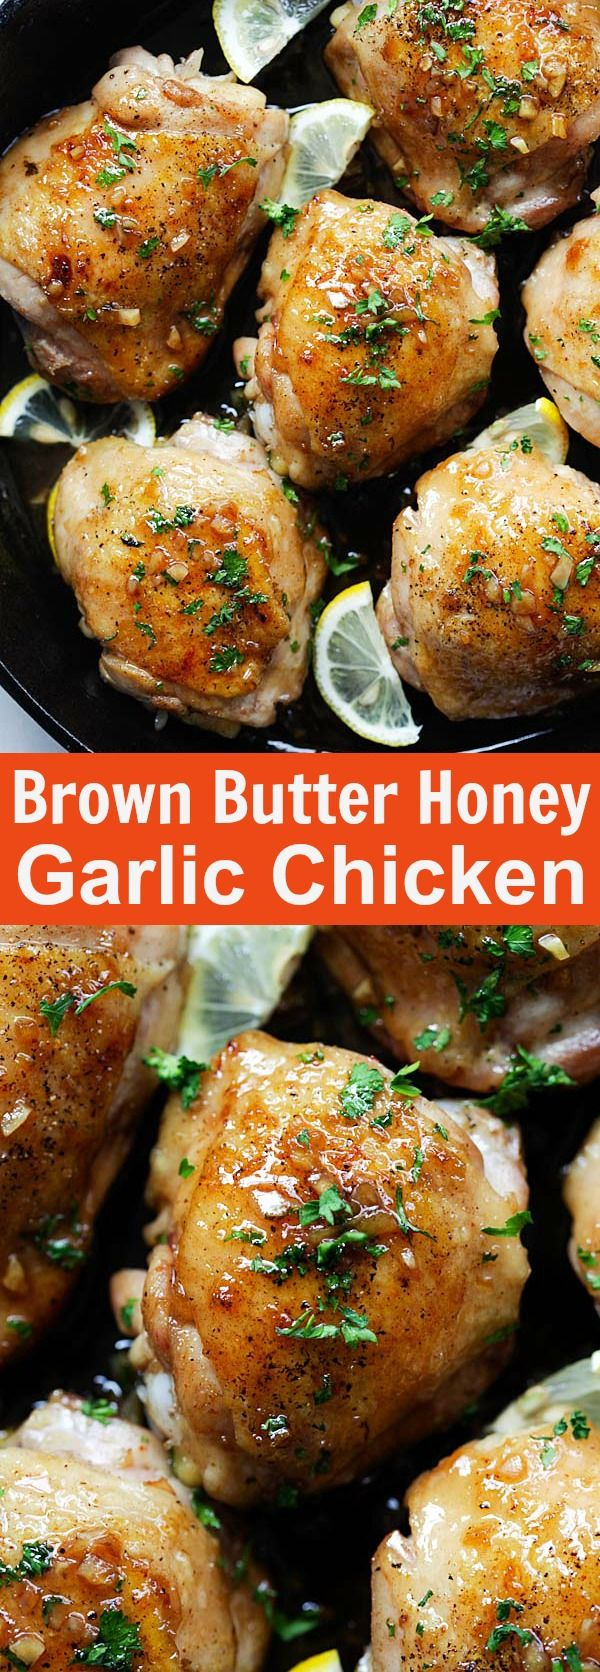 Brown Butter Honey Garlic Chicken Sweet Savory And Sticky Skillet Chicken With The Most Delicious Honey Garlic Sauce Easy Dinner For The Family